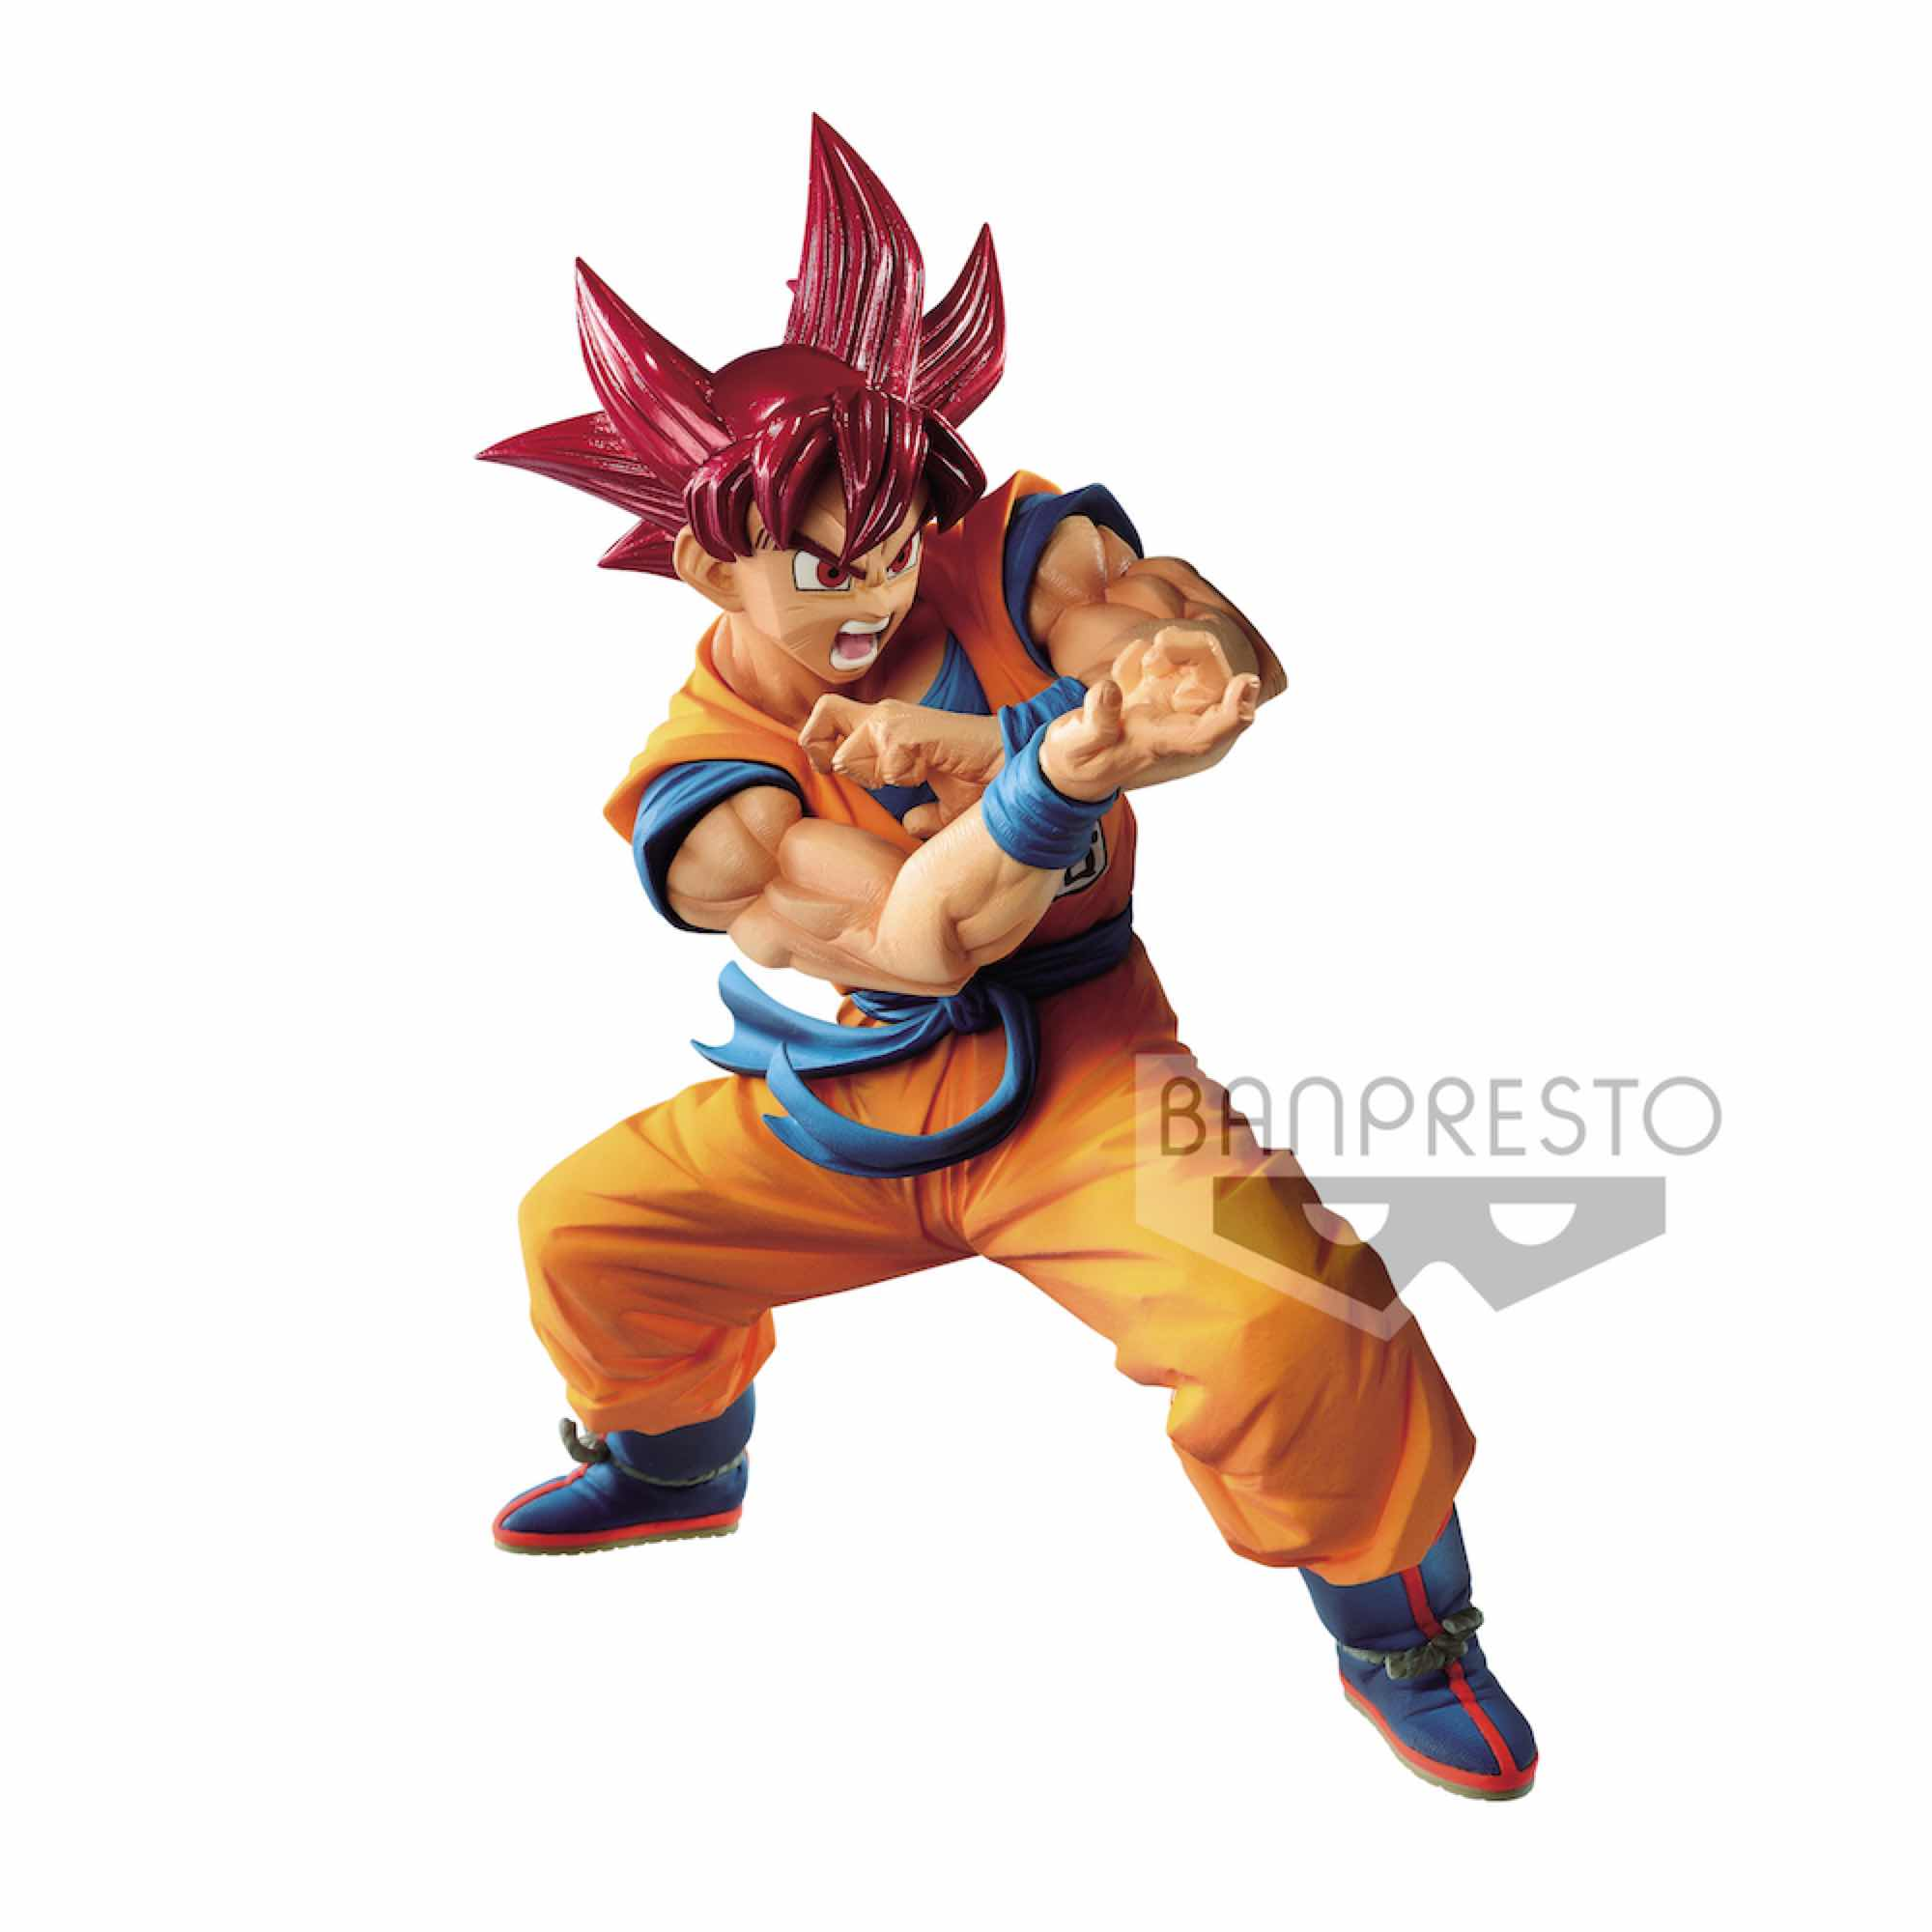 SUPER SAIYAN GOD SON GOKU SPECIAL IV FIGURE 17 CM DRAGON BALL SUPER BLOOD OF SAIYANS